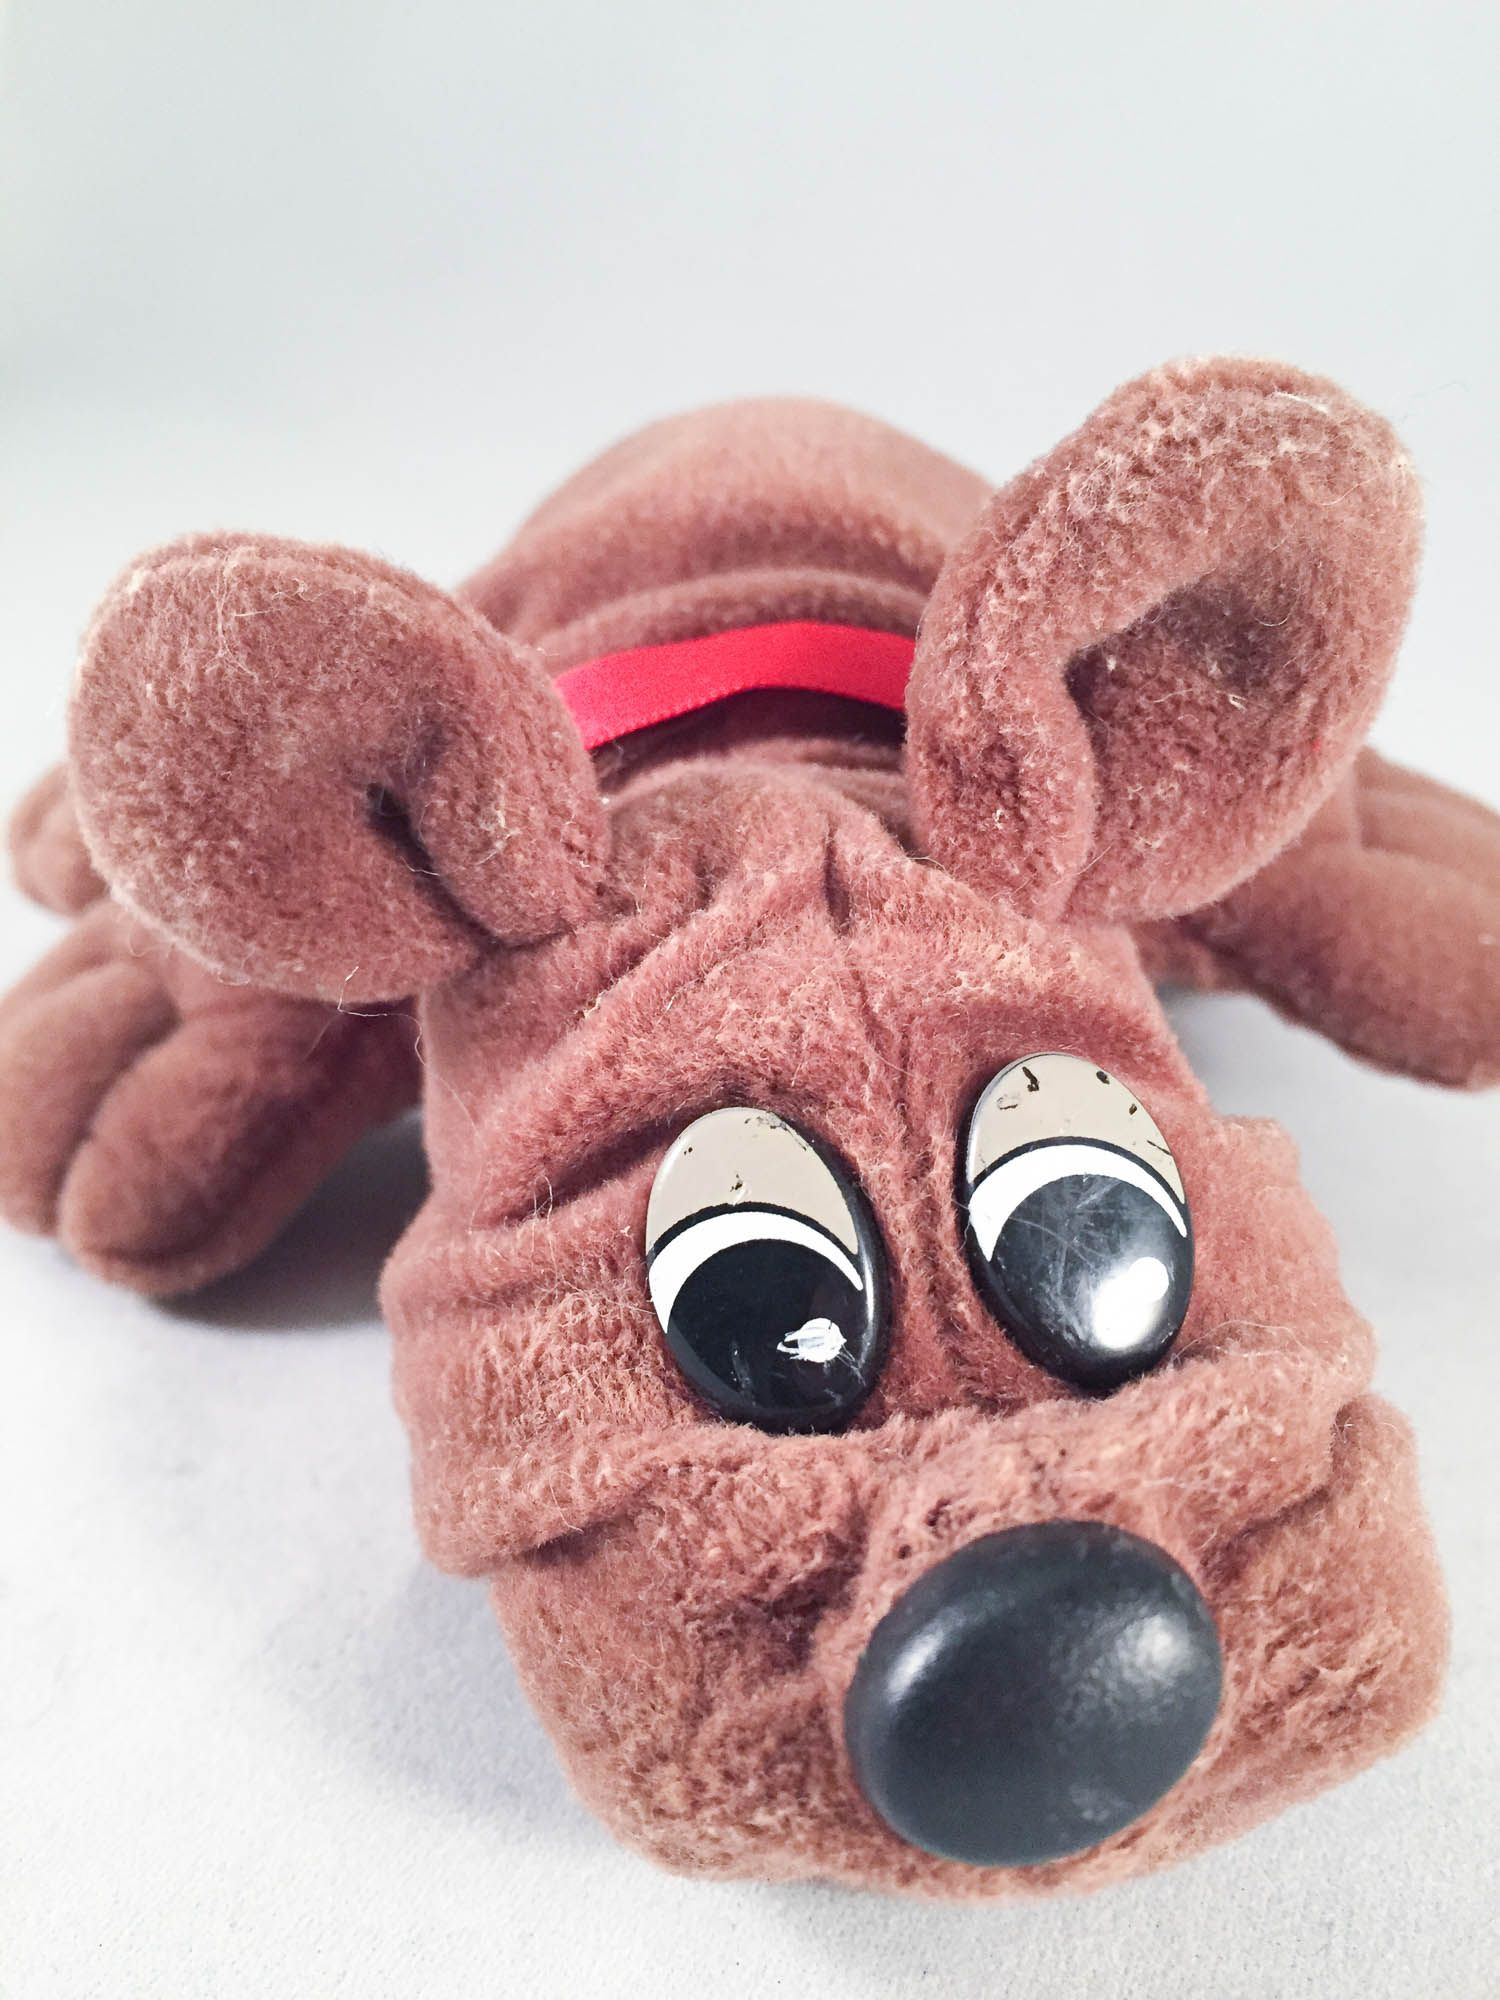 Pound Puppy Rumple Skins Small Brown With Red Collar Tonka Pound Puppies Puppies Red